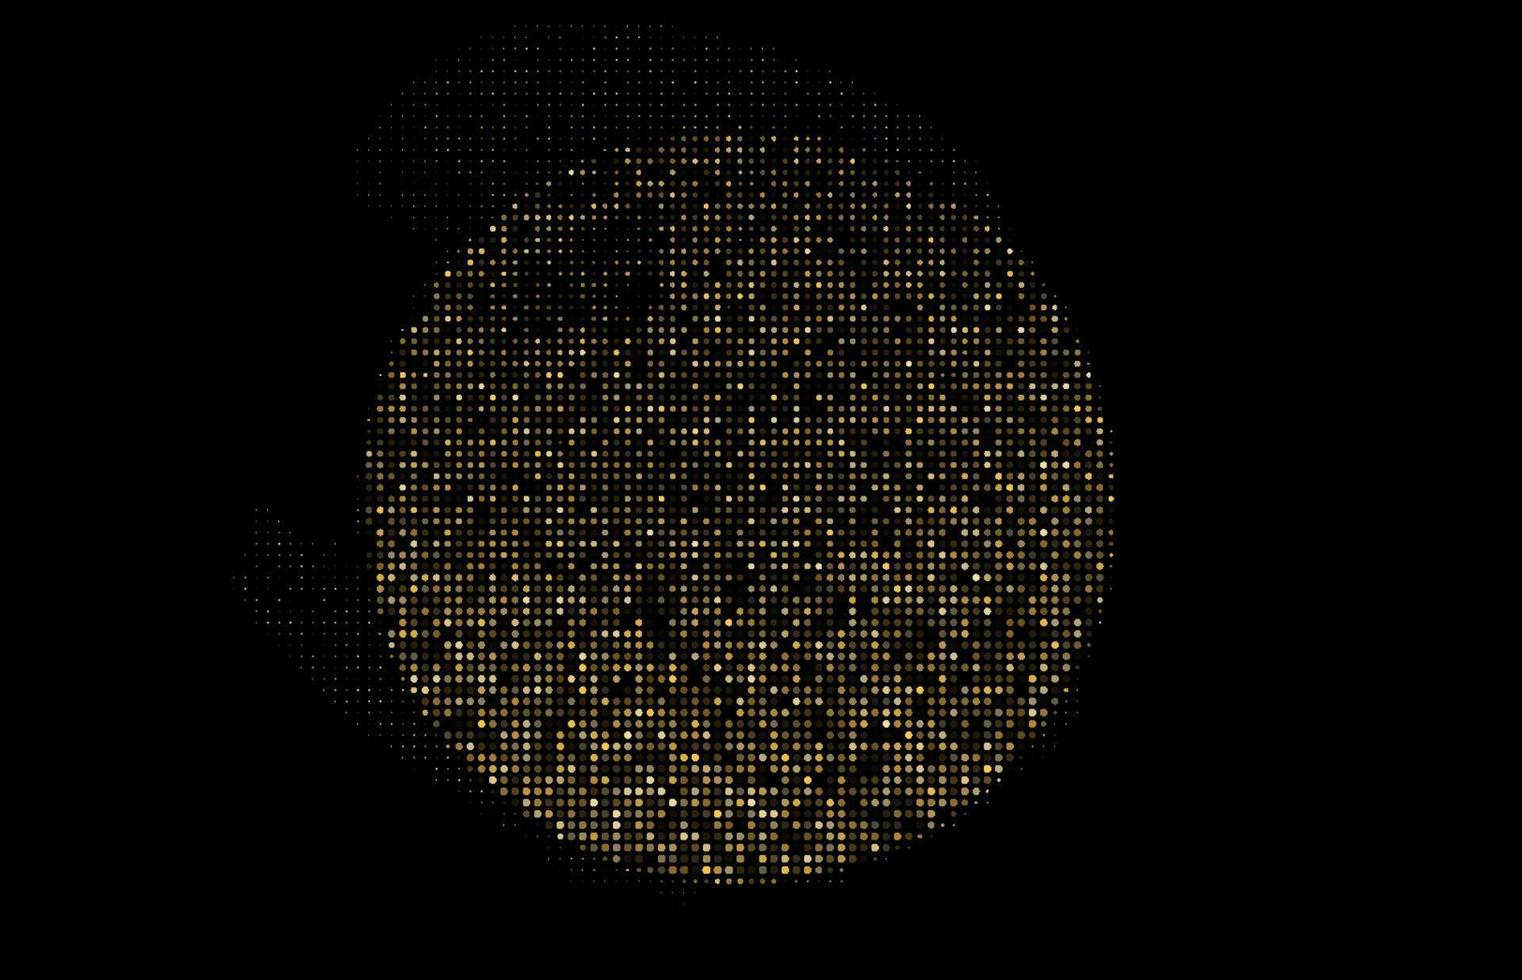 Gold Glitter Halftone Dotted Backdrop Vector Pattern